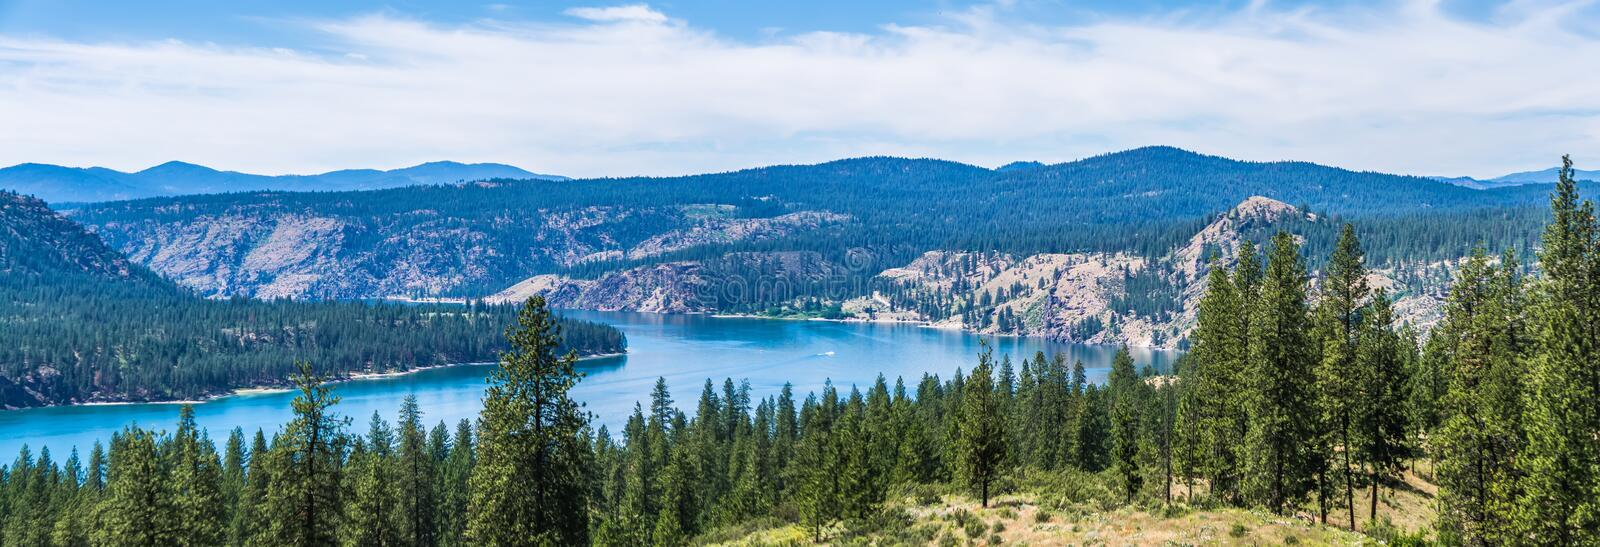 Columbia river scenes on a beautiful sunny day. Columbia river scenes  on a beautiful sunny day royalty free stock images